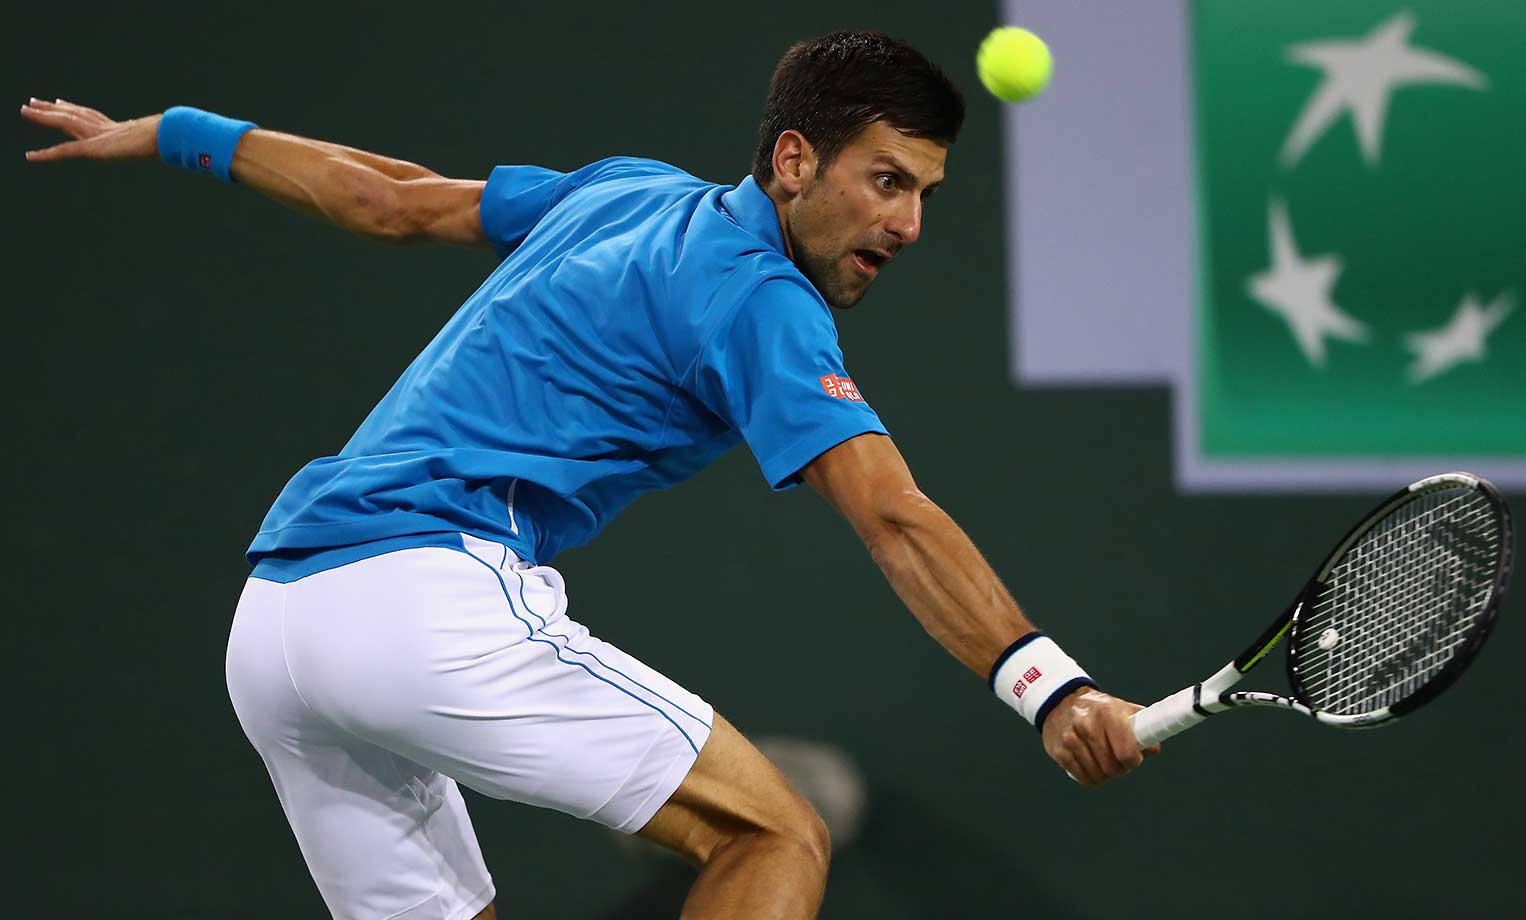 Novak Djokovic plays a backhand in his match against Feliciano Lopez of Spain.